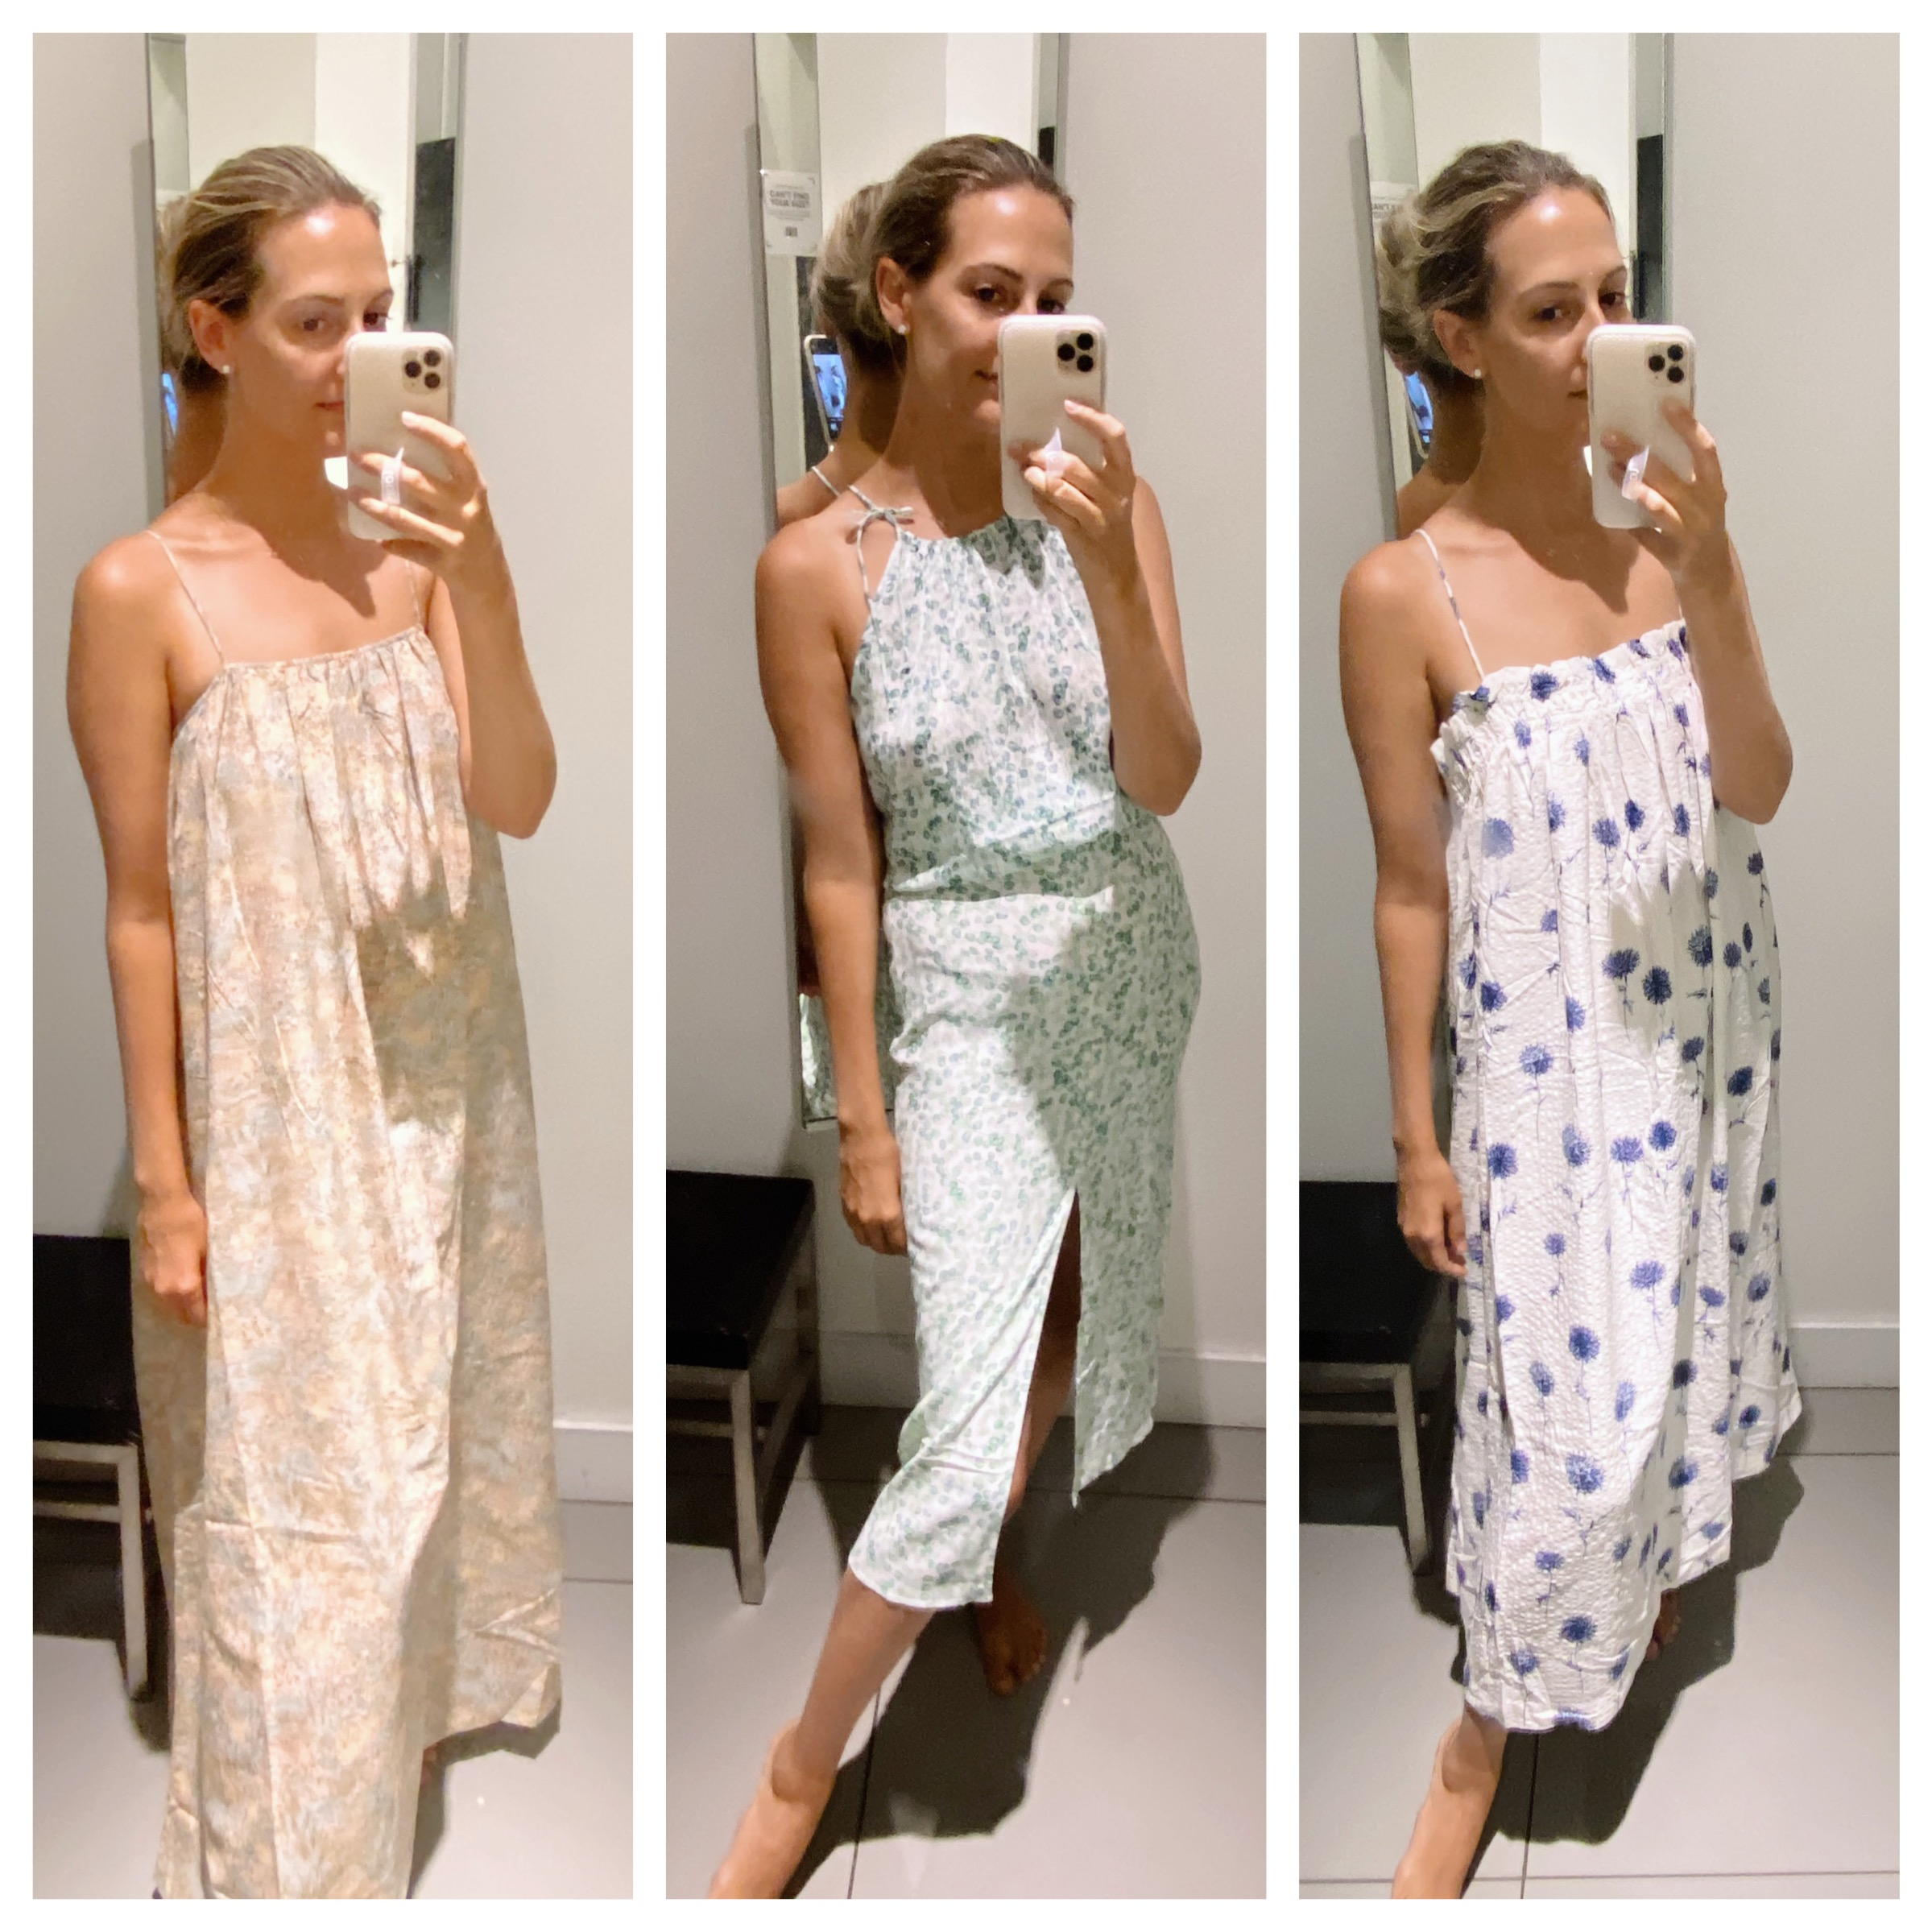 collage photo of woman trying on dresses and sharing Tips for Shopping at Hm